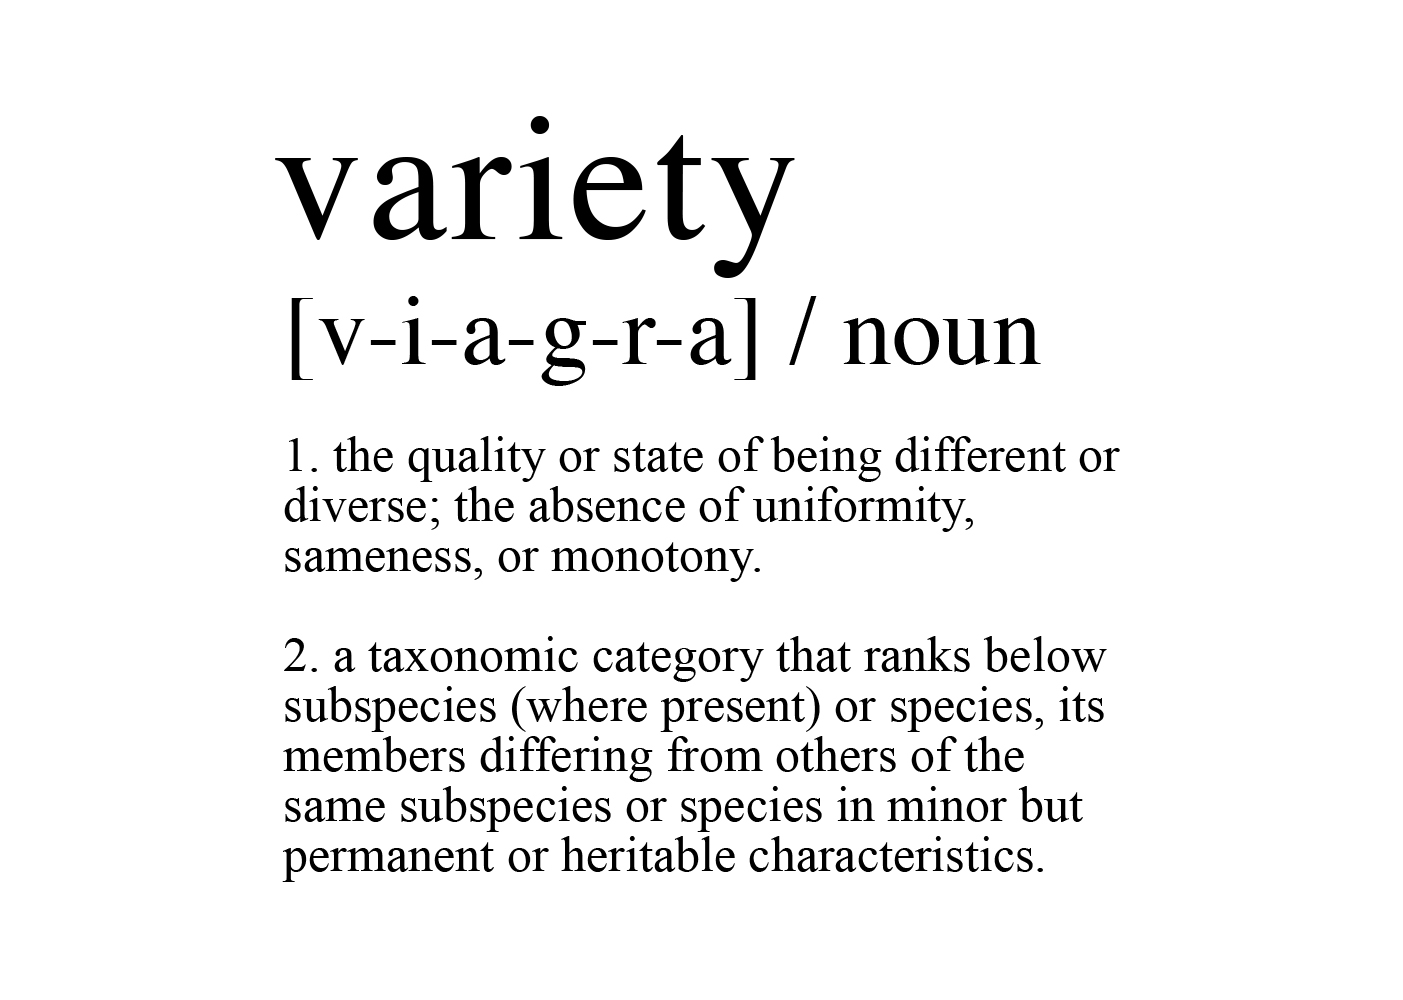 A CVC video featured an Asian man confusing the words 'variety'.